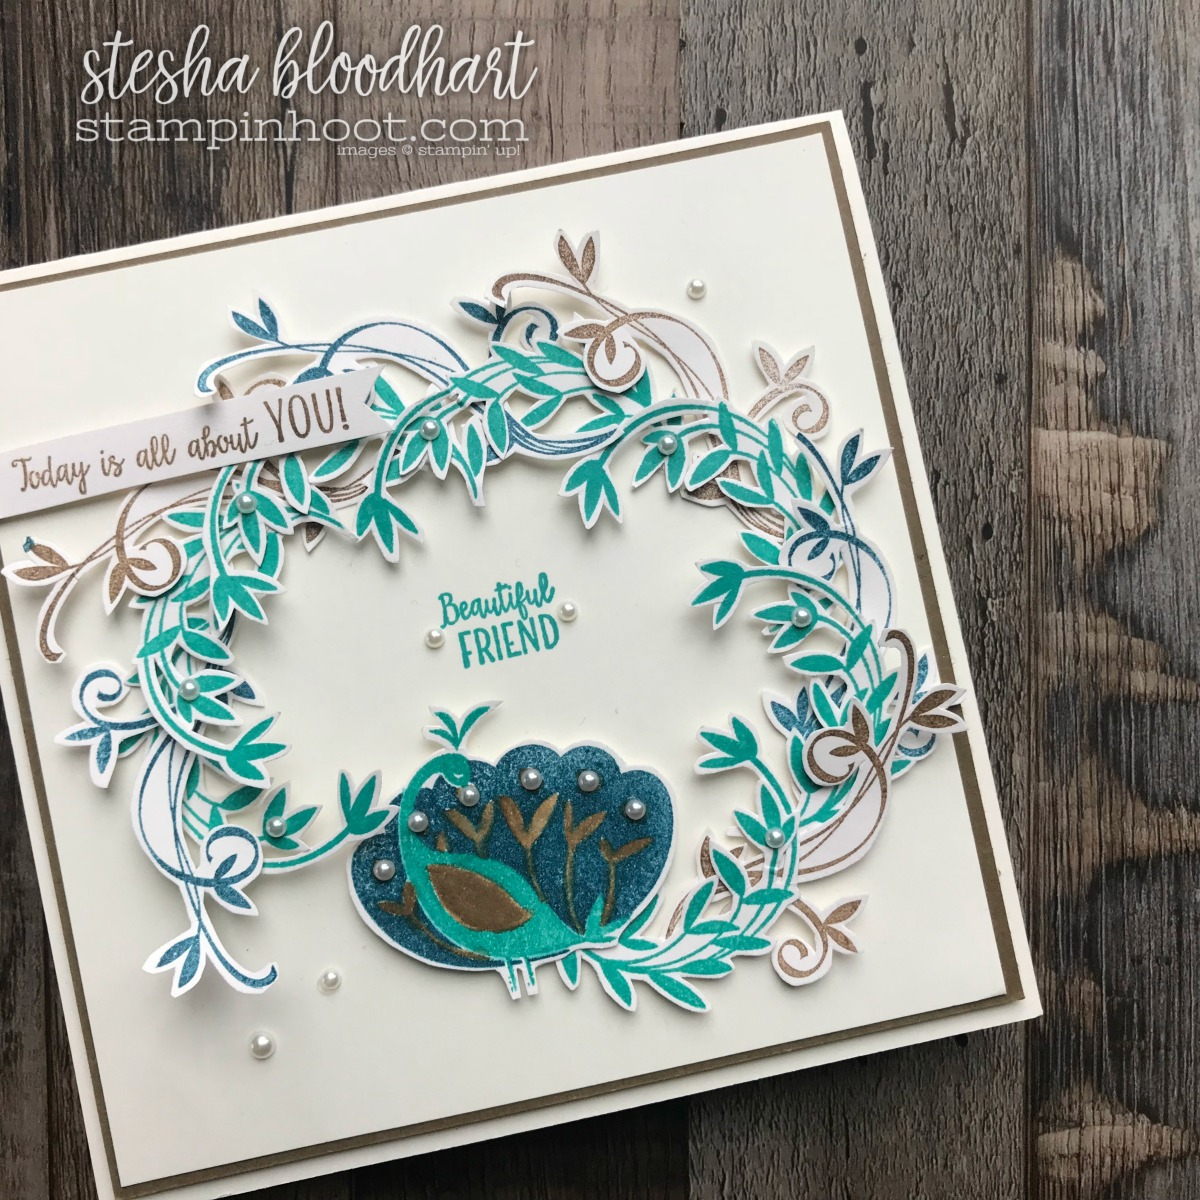 Beautiful Peacock Stamp Set by Stampin' Up! Earn if FREE with $50 Purchase during 2018 Sale-a-Bration. Card created by Stesha Bloodhart, Stampin' Hoot #stampinhoot #steshabloodhart #gdp124